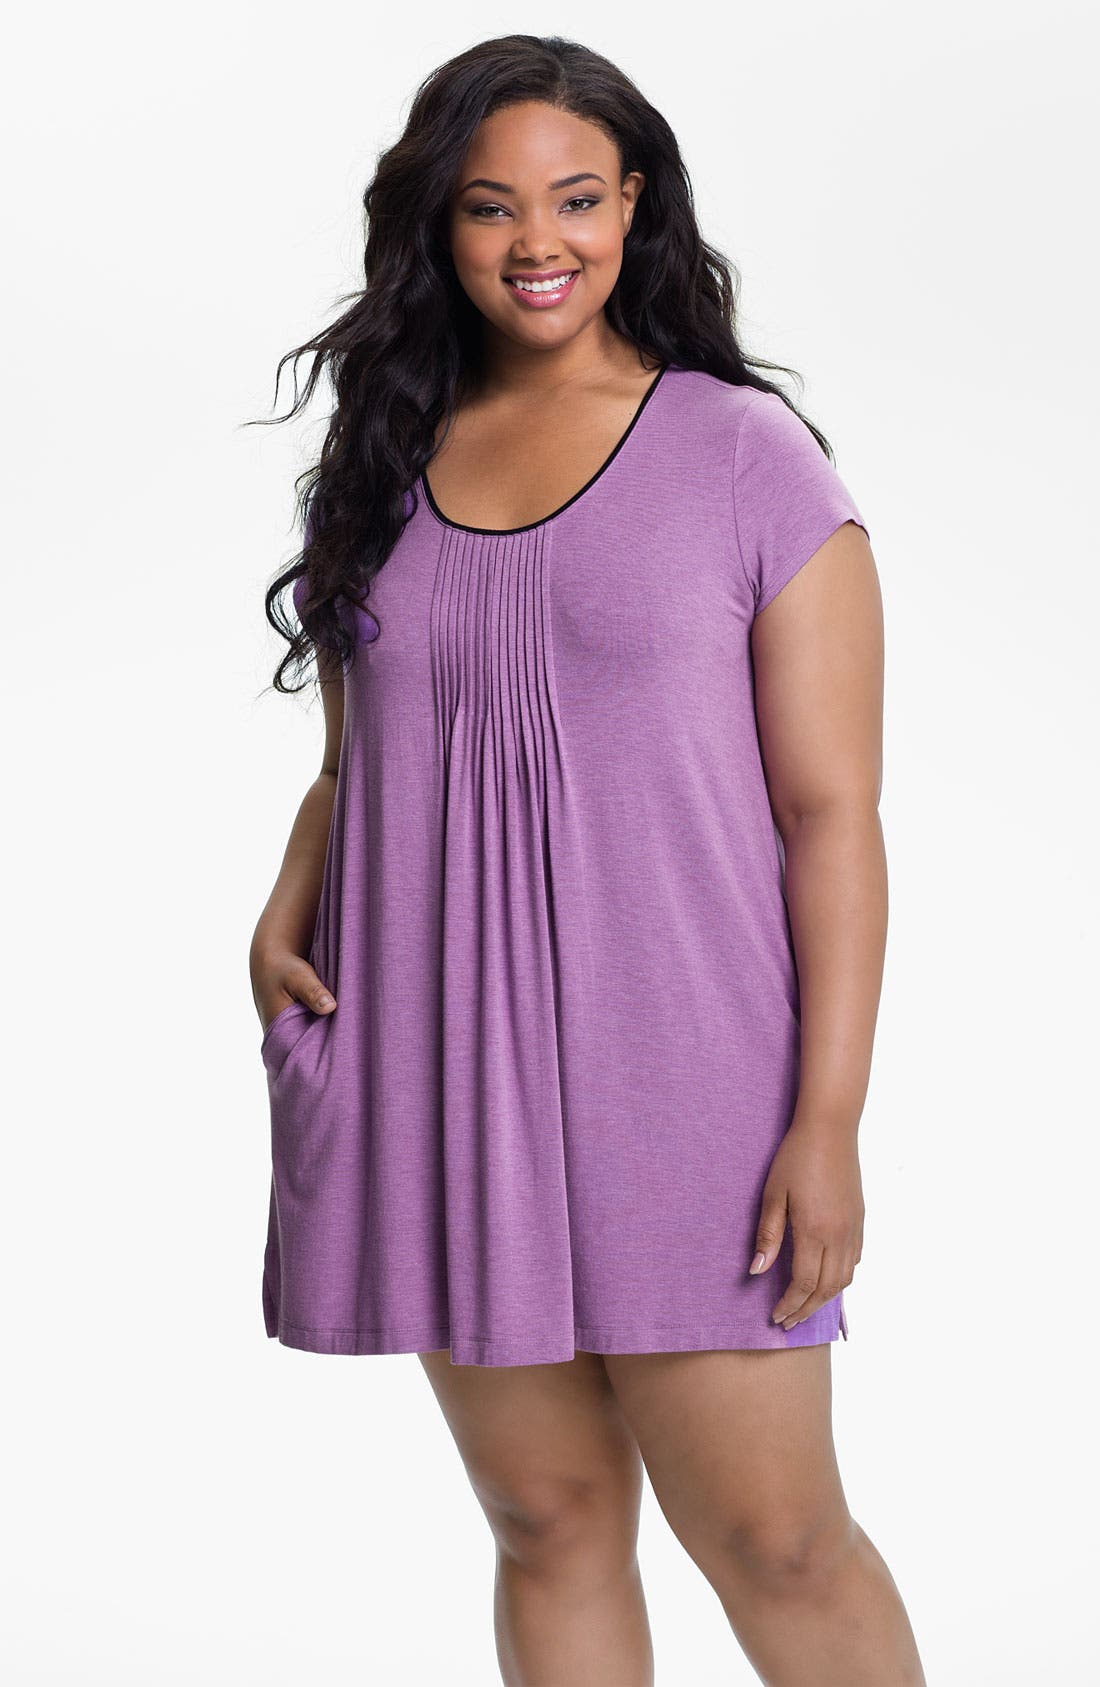 Alternate Image 1 Selected - DKNY '7 Easy Pieces' Pintuck Short Sleeve Nightshirt (Plus Size)